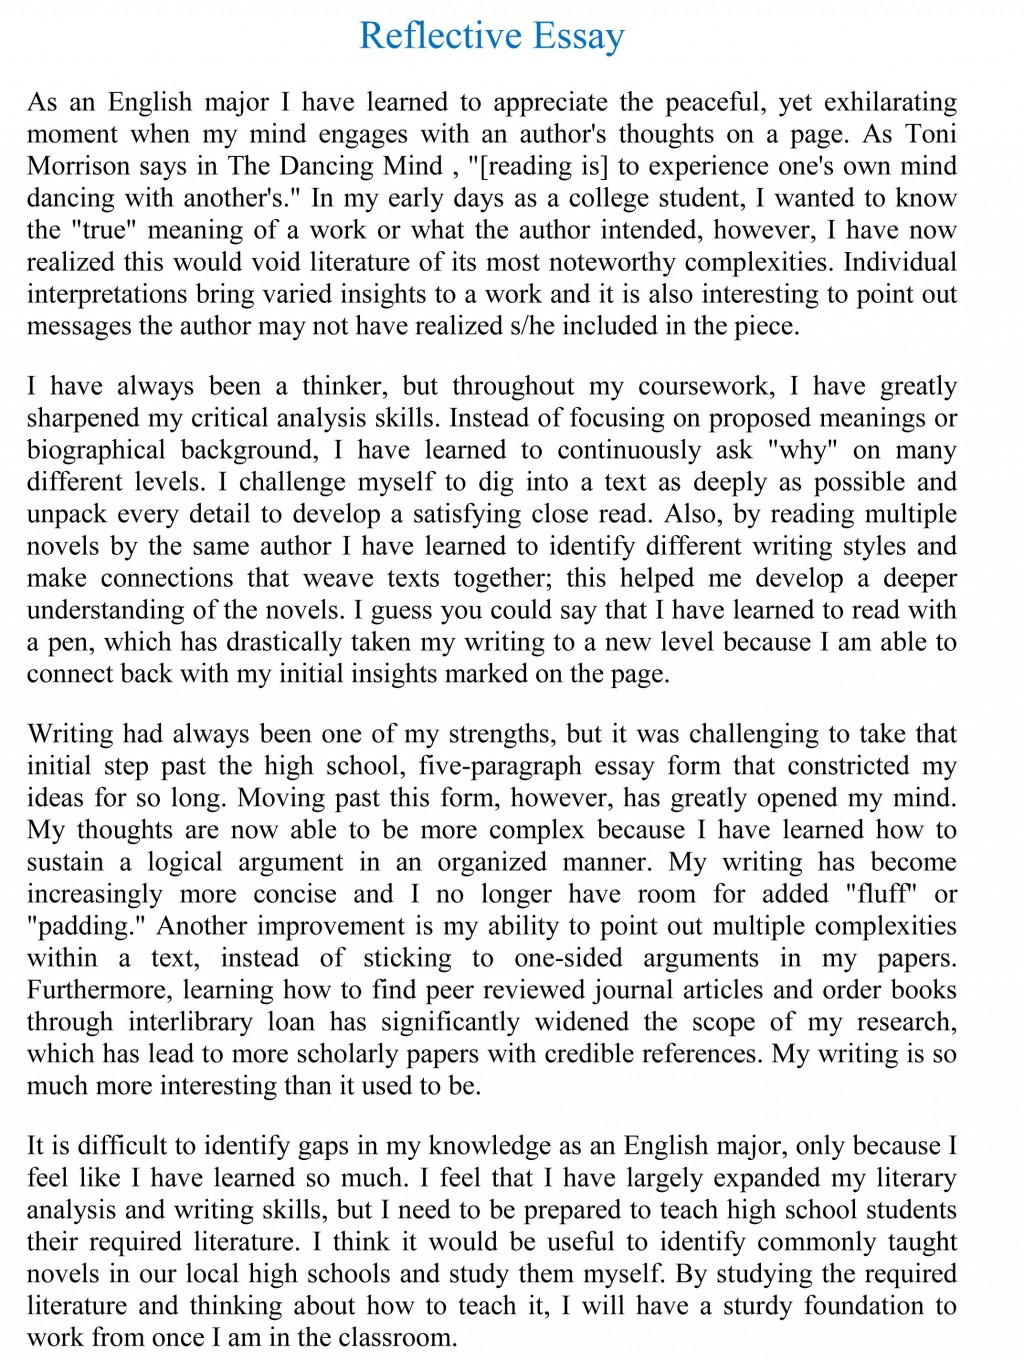 004 Reflective Essay Sample How To Start Introduction Surprising A Write An Example Large